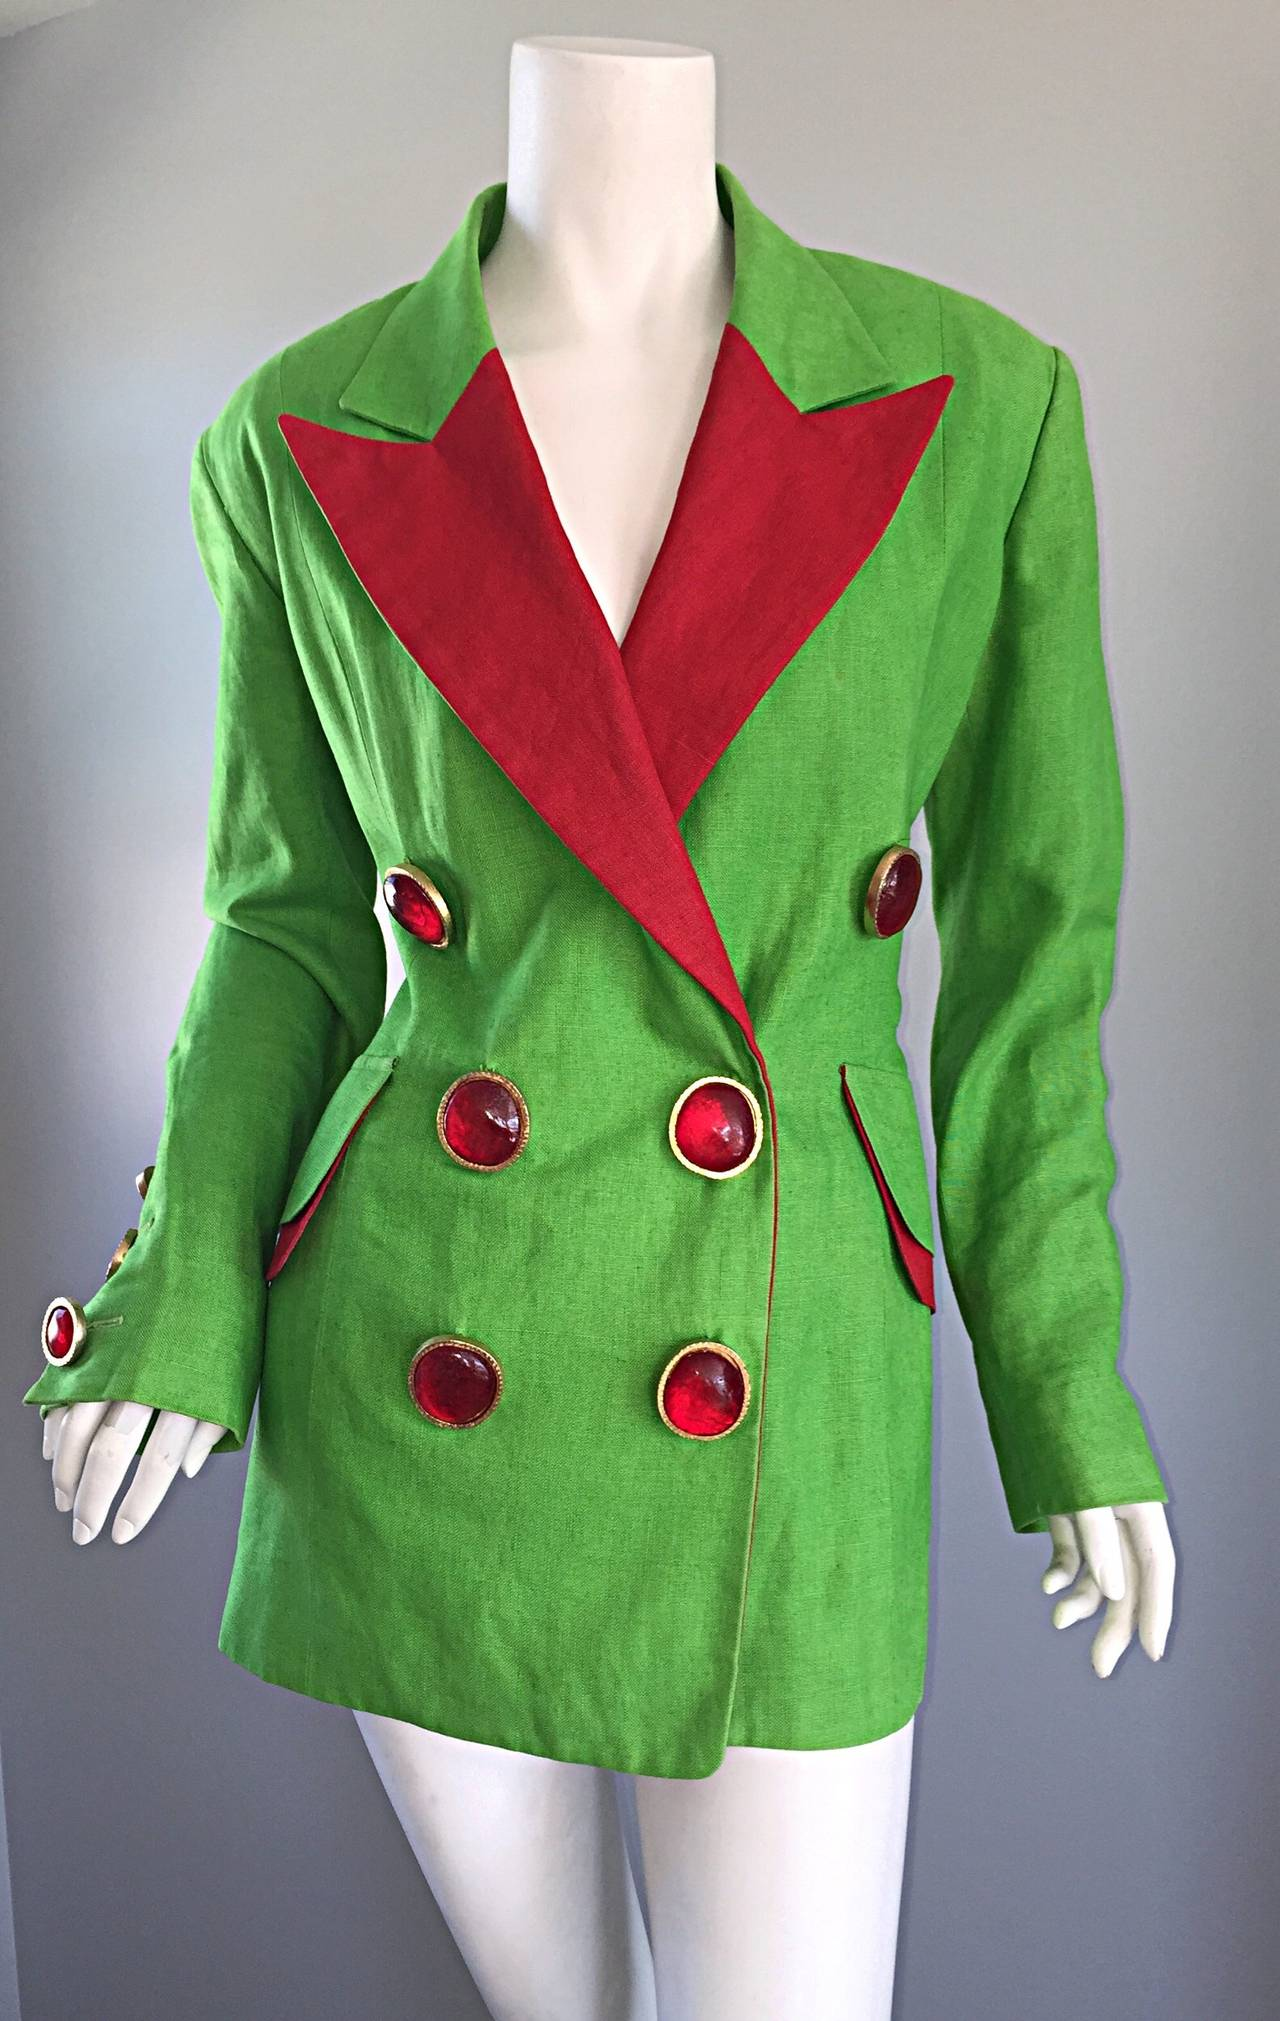 Incredible Vintage Gemma Kahng Green + Red Blazer w/ Gripoix Buttons For Sale 5